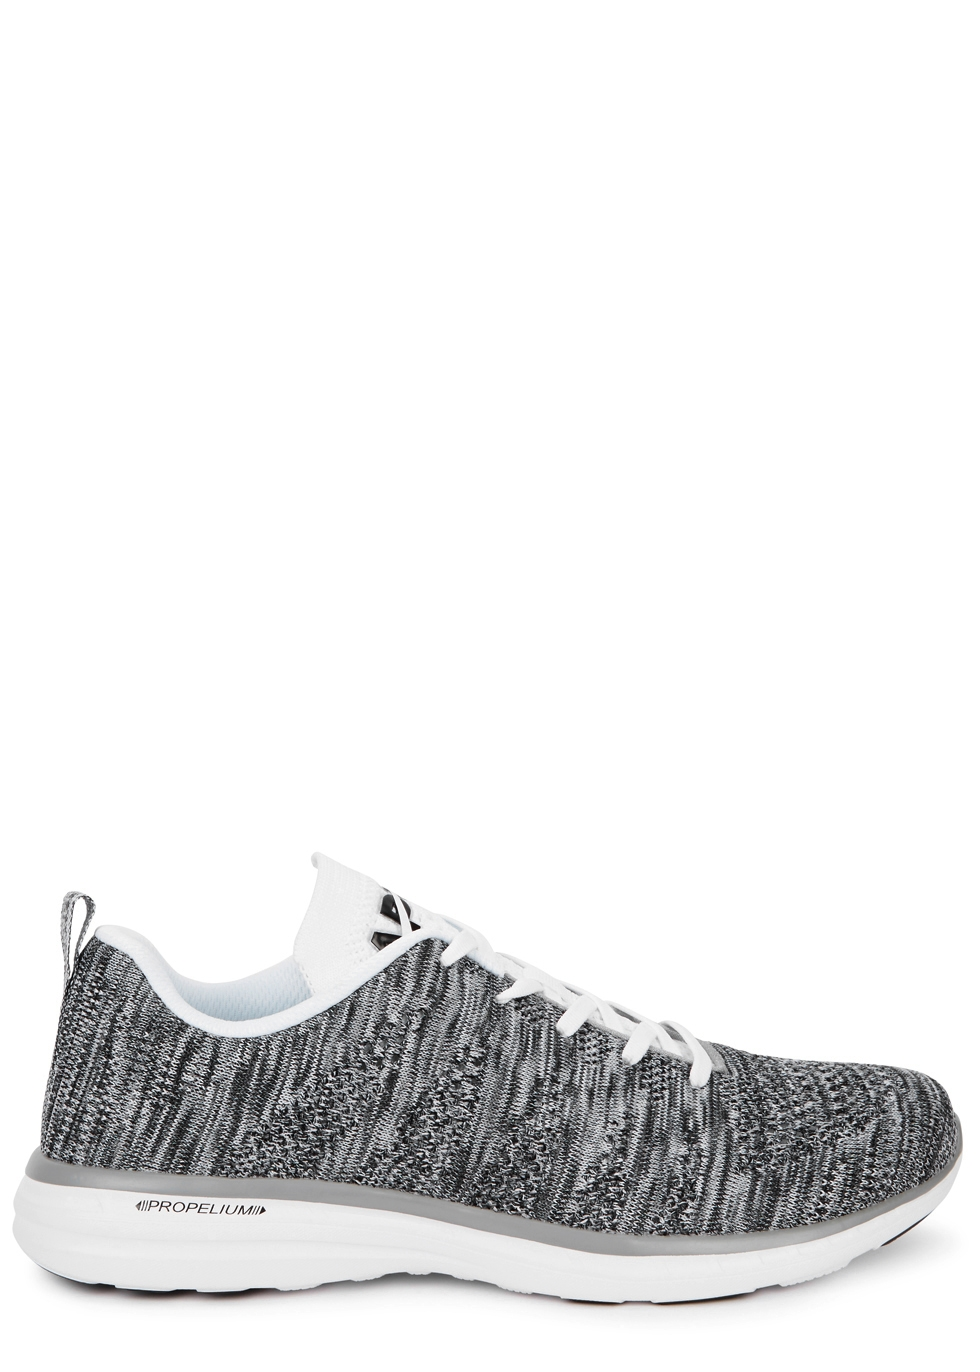 APL ATHLETIC PROPULSION LABS TECHLOOM PRO GREY KNITTED TRAINERS